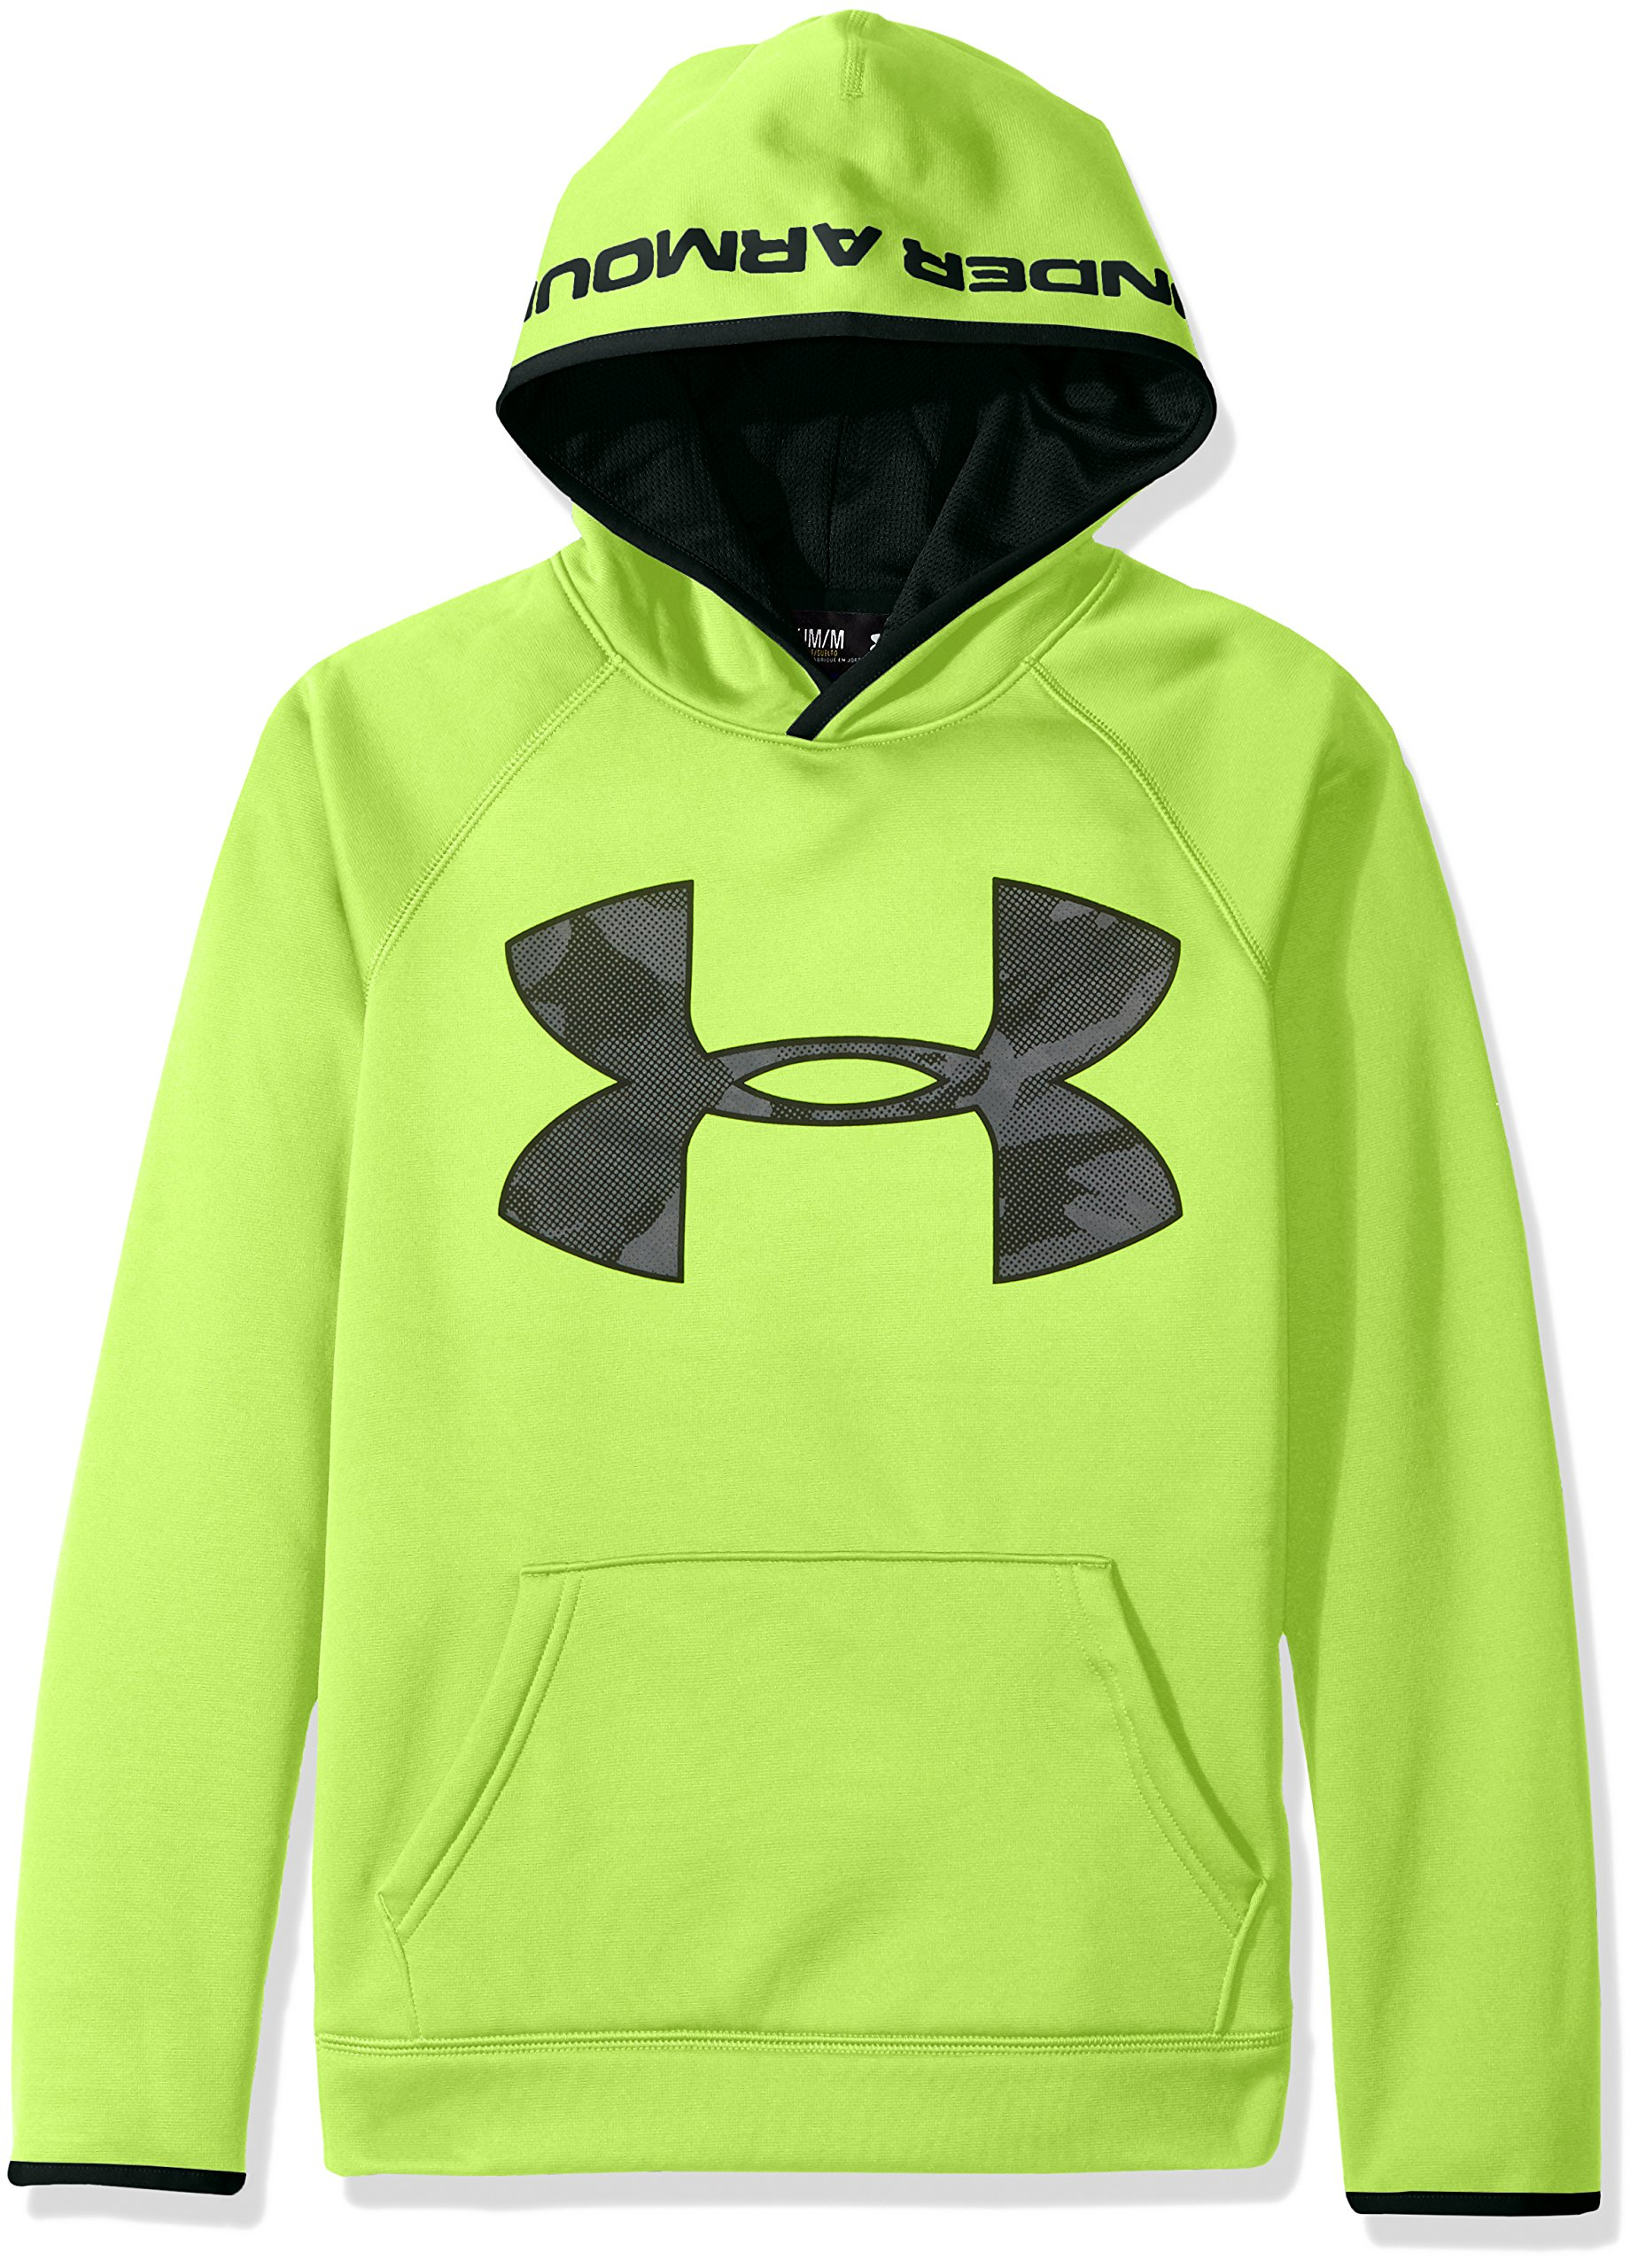 Under Armour Boys' Storm Armour Fleece Highlight Big Logo Hoodie, Fuel Green (364)/Black, Youth Small by Under Armour (Image #2)